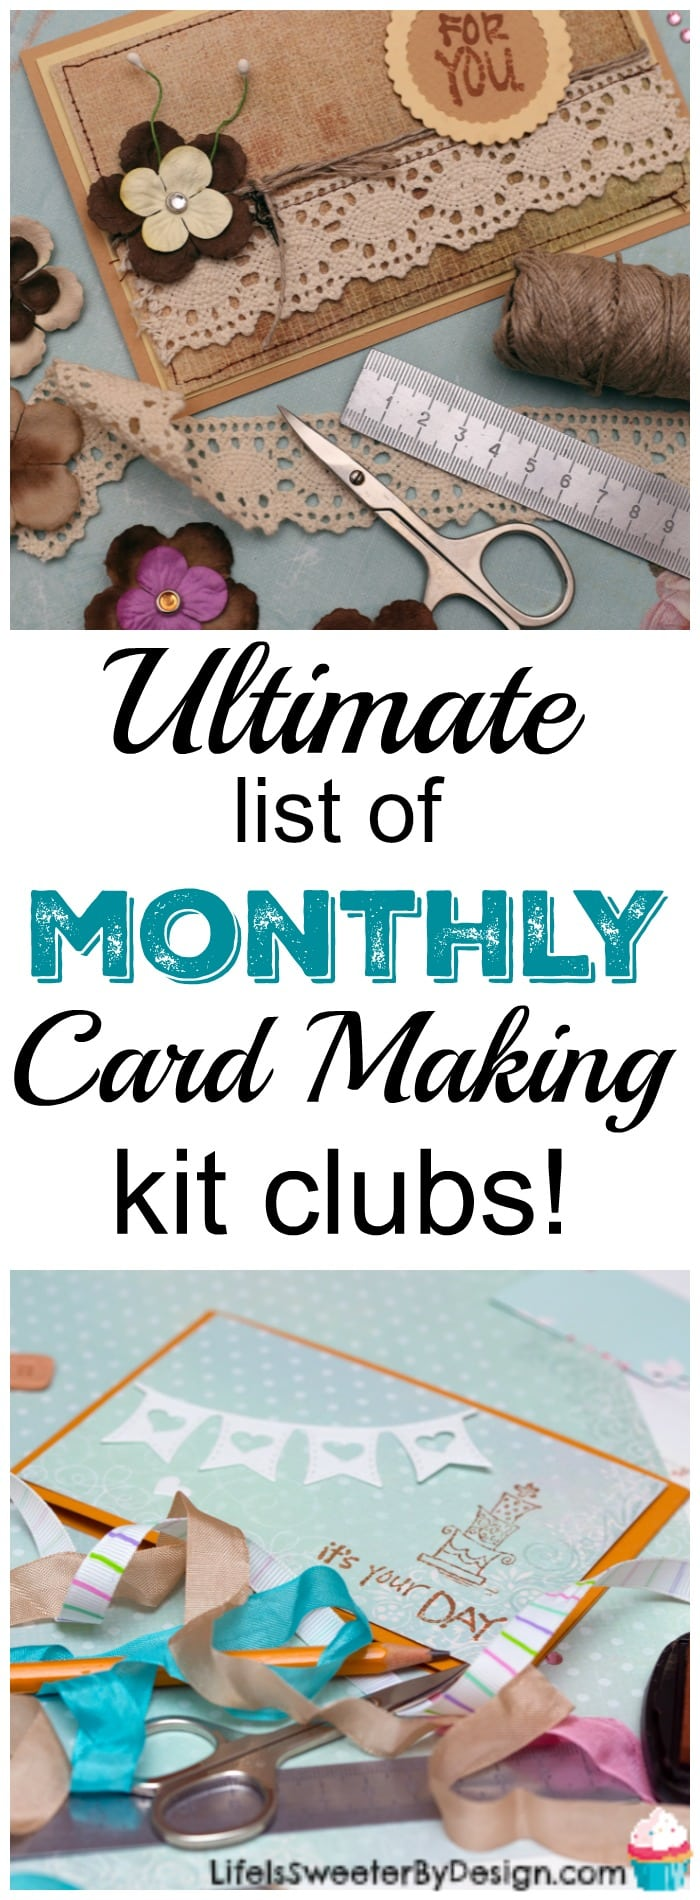 Monthly Card Making Kit Clubs Life Is Sweeter By Design